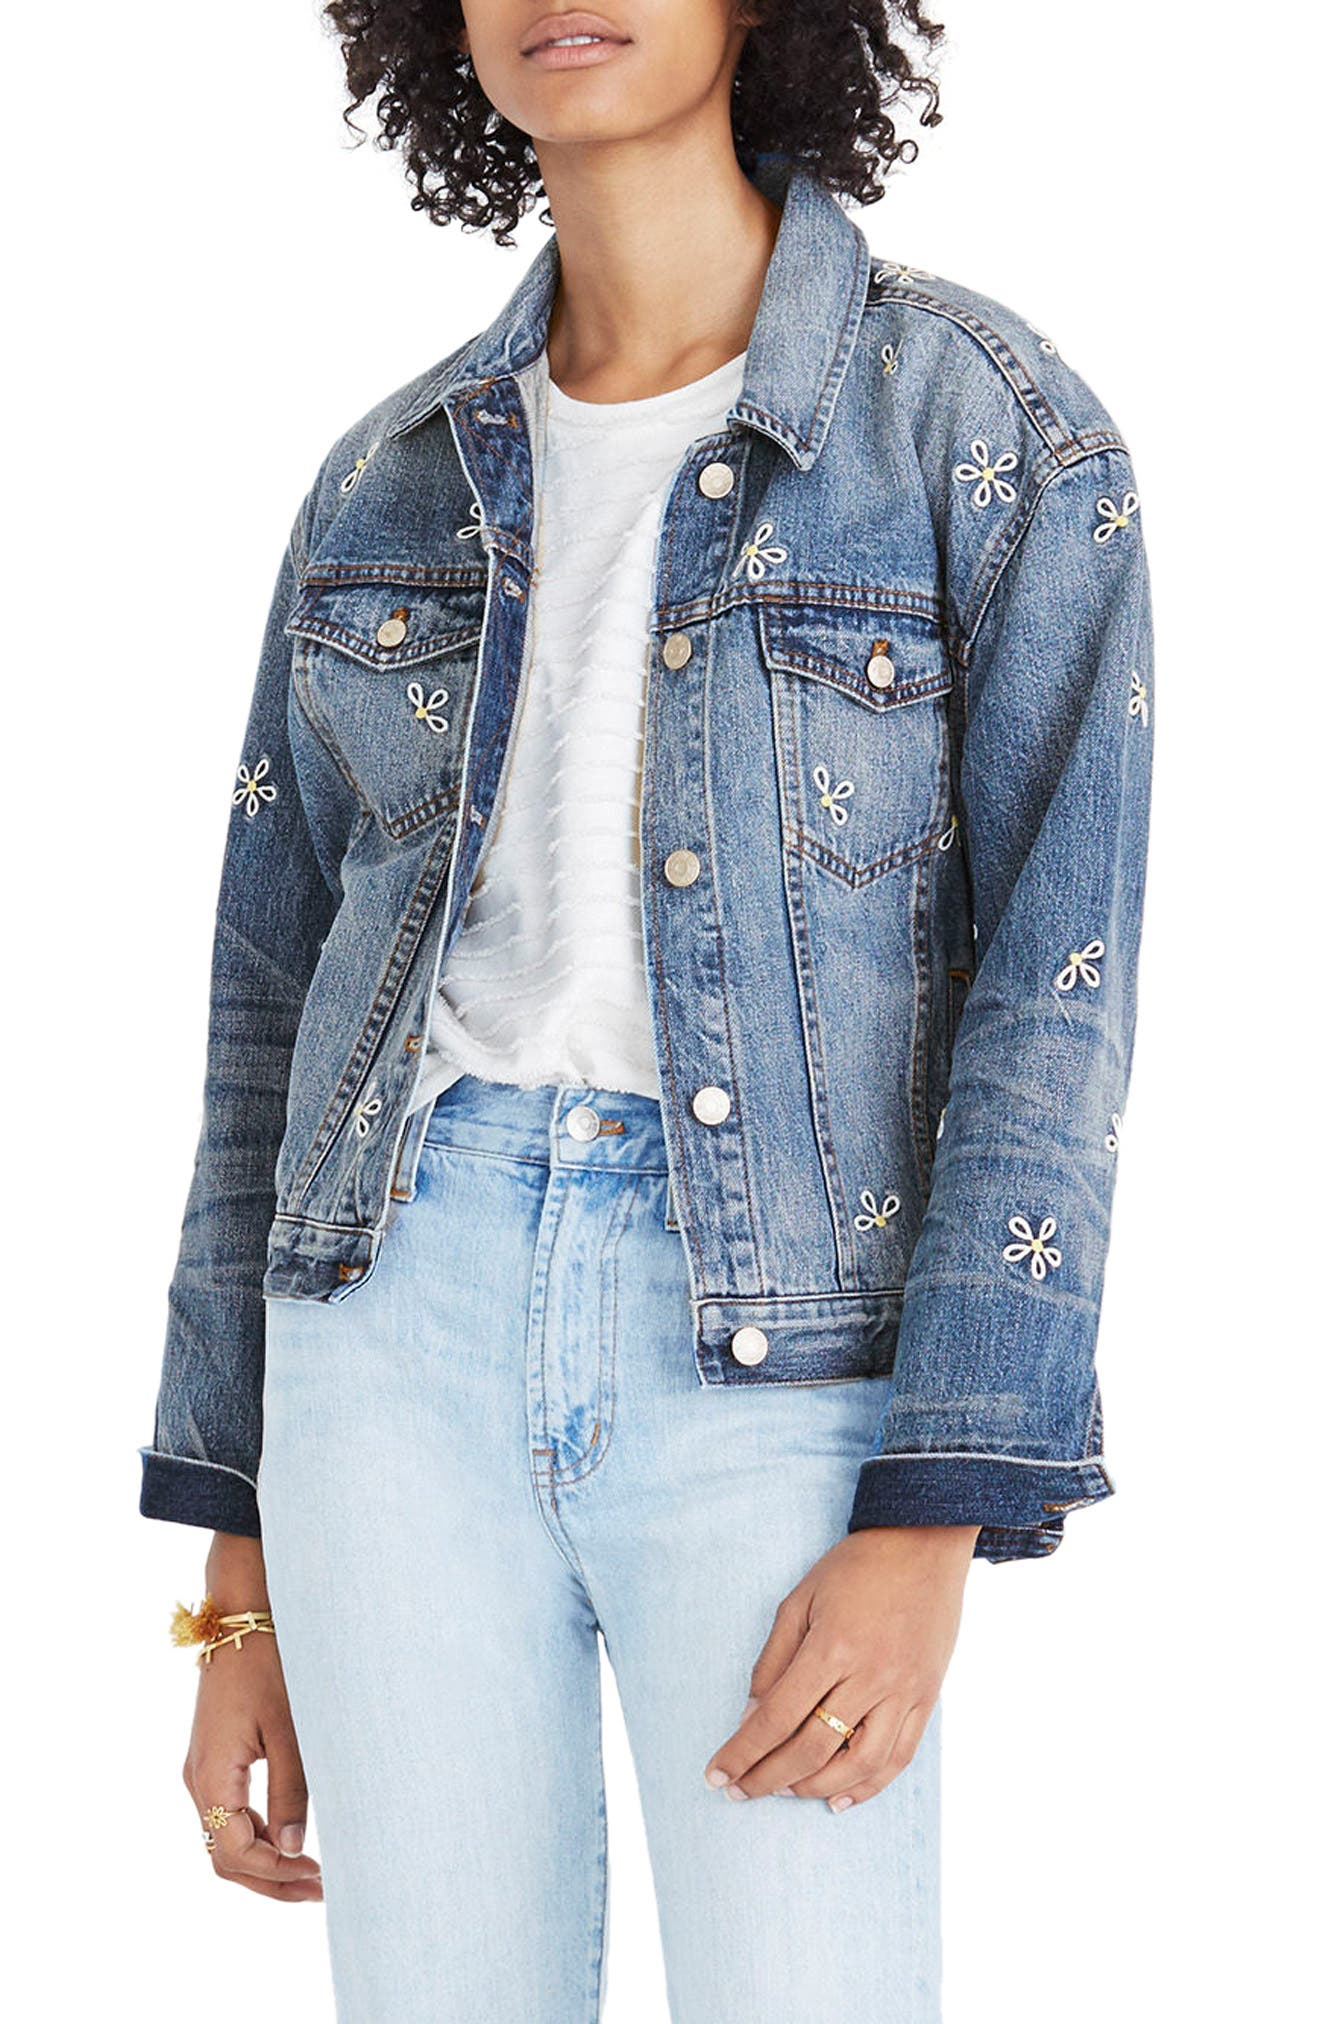 Daisy Embroidered Boxy Crop Denim Jacket,                             Main thumbnail 1, color,                             400